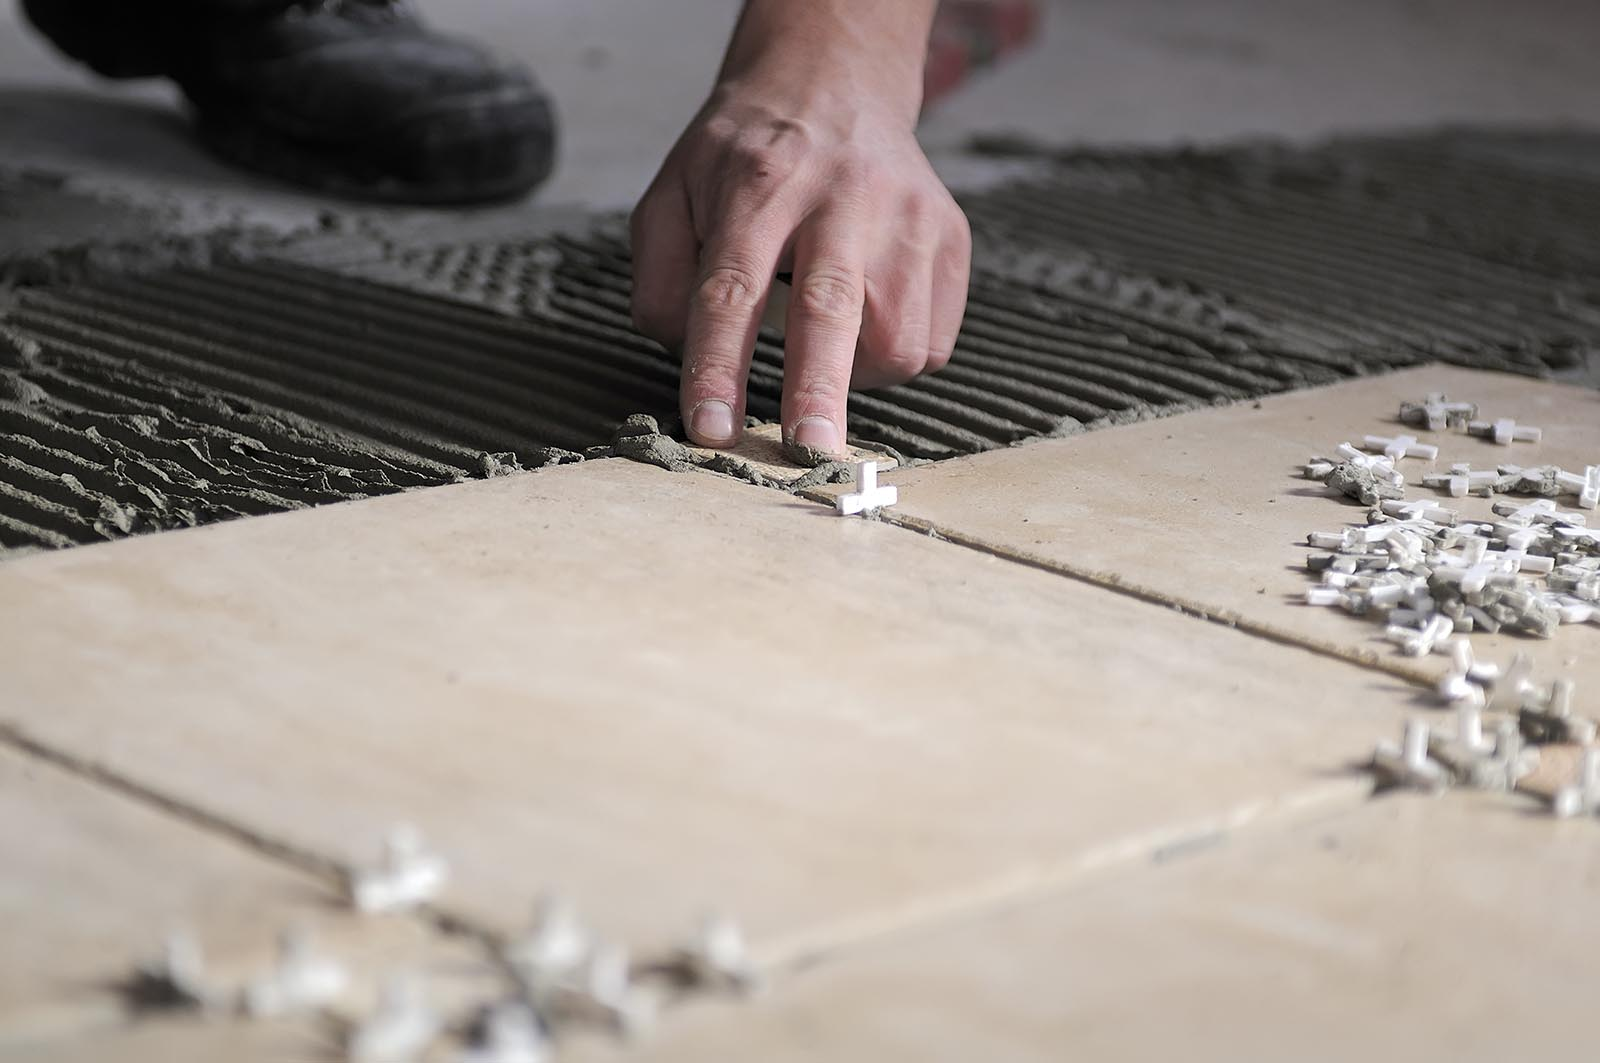 Creative Materials is committed to servicing tile installation professionals